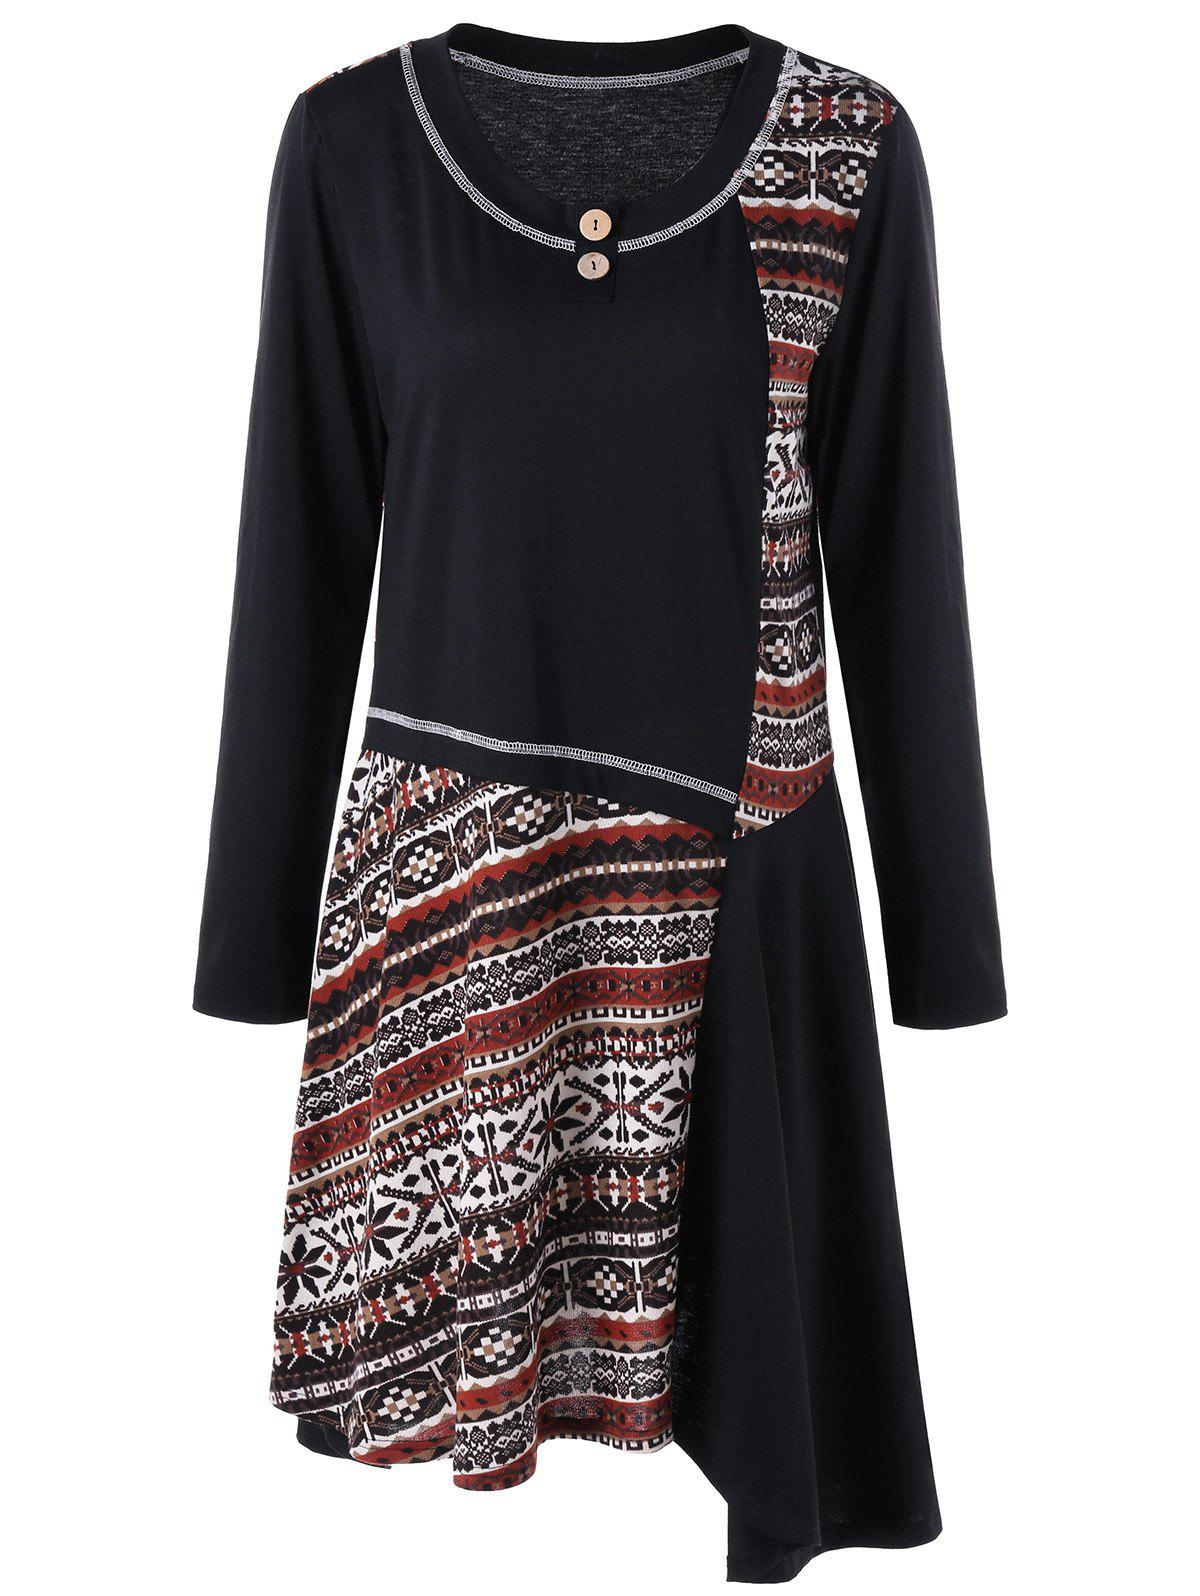 Plus Size Graphic Asymmetrical Tee DressWOMEN<br><br>Size: 5XL; Color: BLACK; Style: Casual; Material: Polyester,Spandex; Silhouette: Asymmetrical; Dresses Length: Knee-Length; Neckline: Round Collar; Sleeve Length: Long Sleeves; Embellishment: Button; Pattern Type: Tribal Print; With Belt: No; Season: Fall,Spring; Weight: 0.3700kg; Package Contents: 1 x Dress;